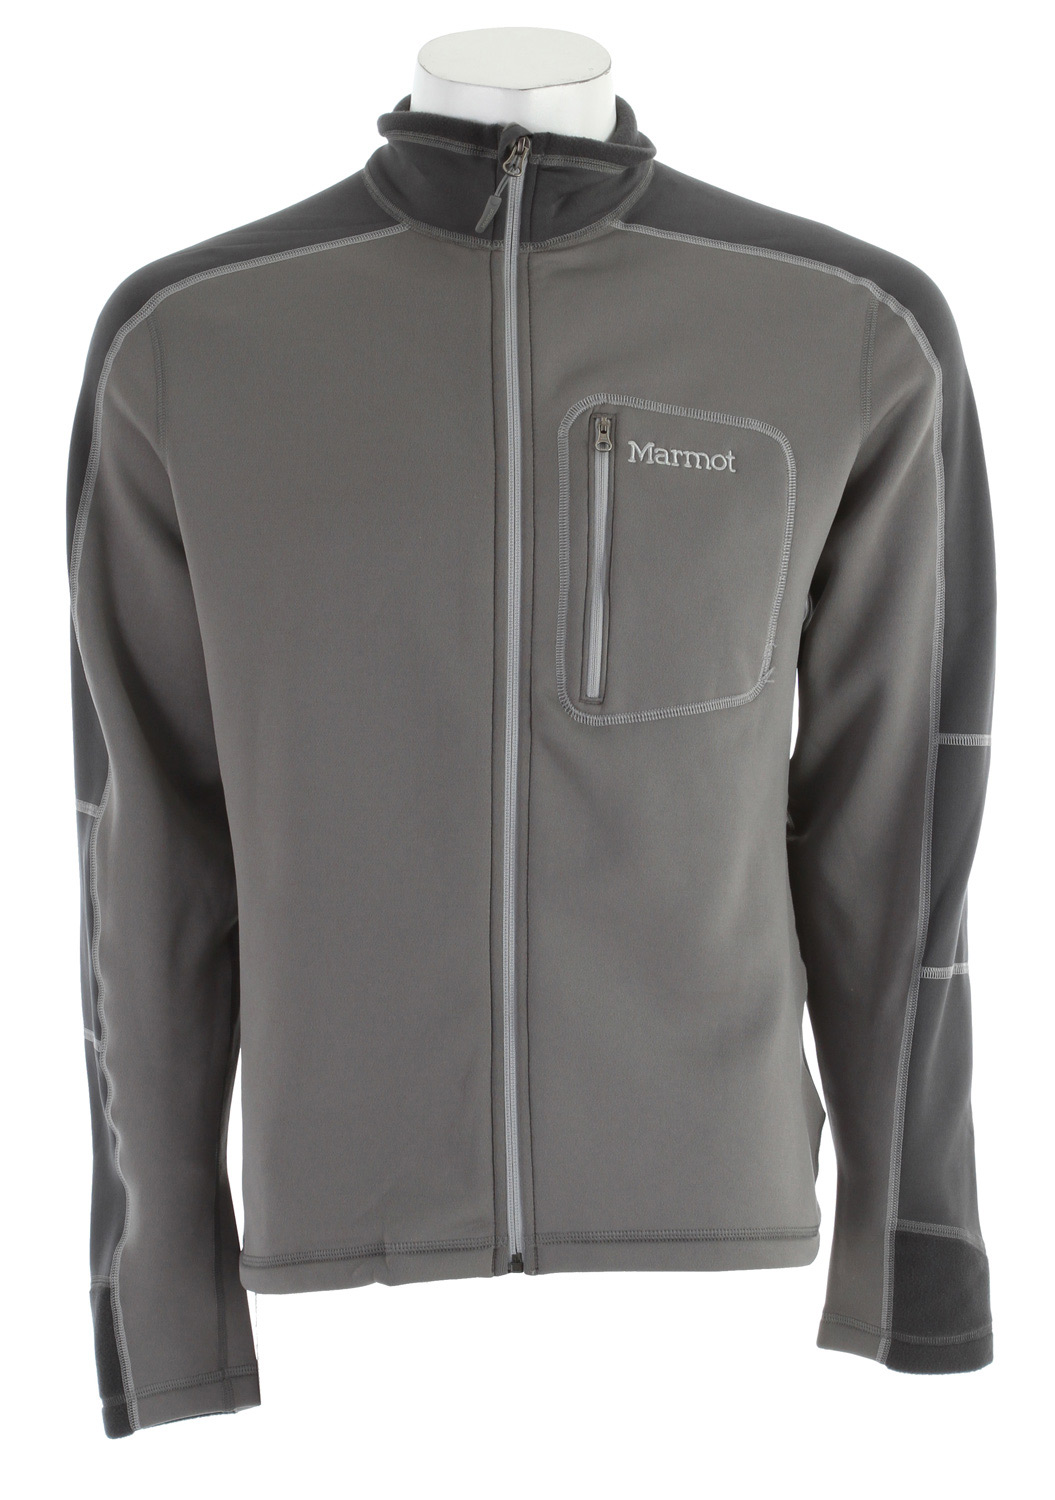 Marmot Power Stretch Fleece Gargoyle/Slate Grey - $70.95